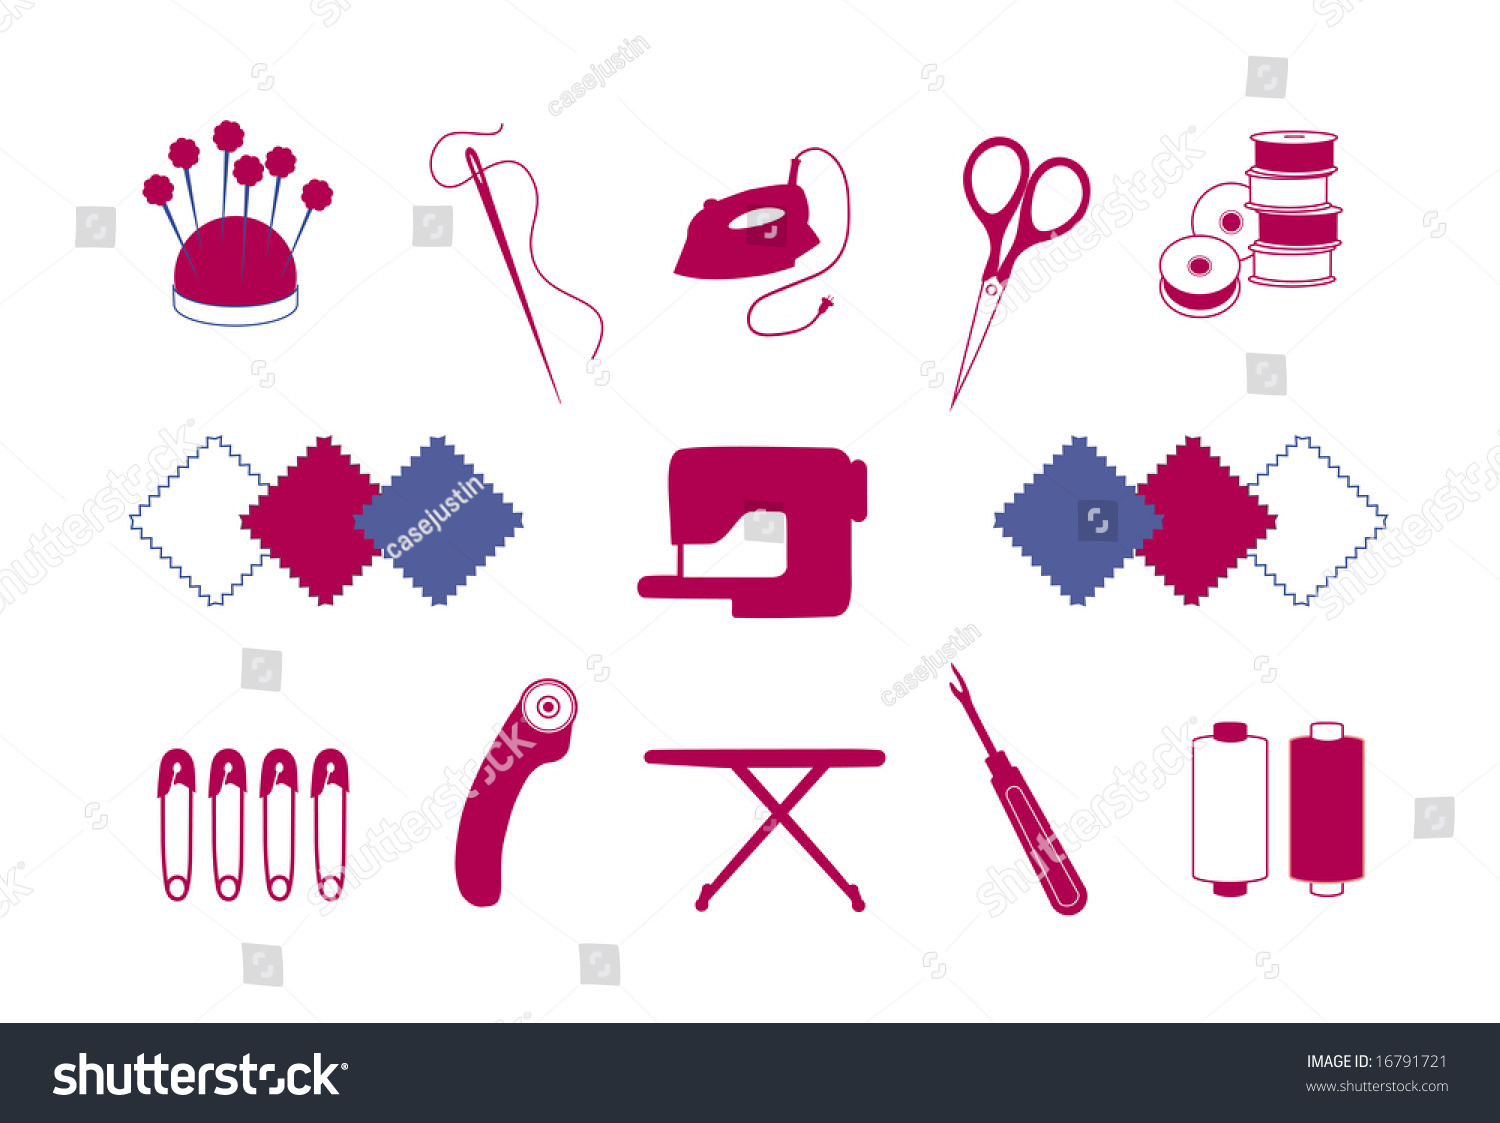 Quilt Patchwork Tools DIY Craft Hobby Stock Vector (Royalty Free ...